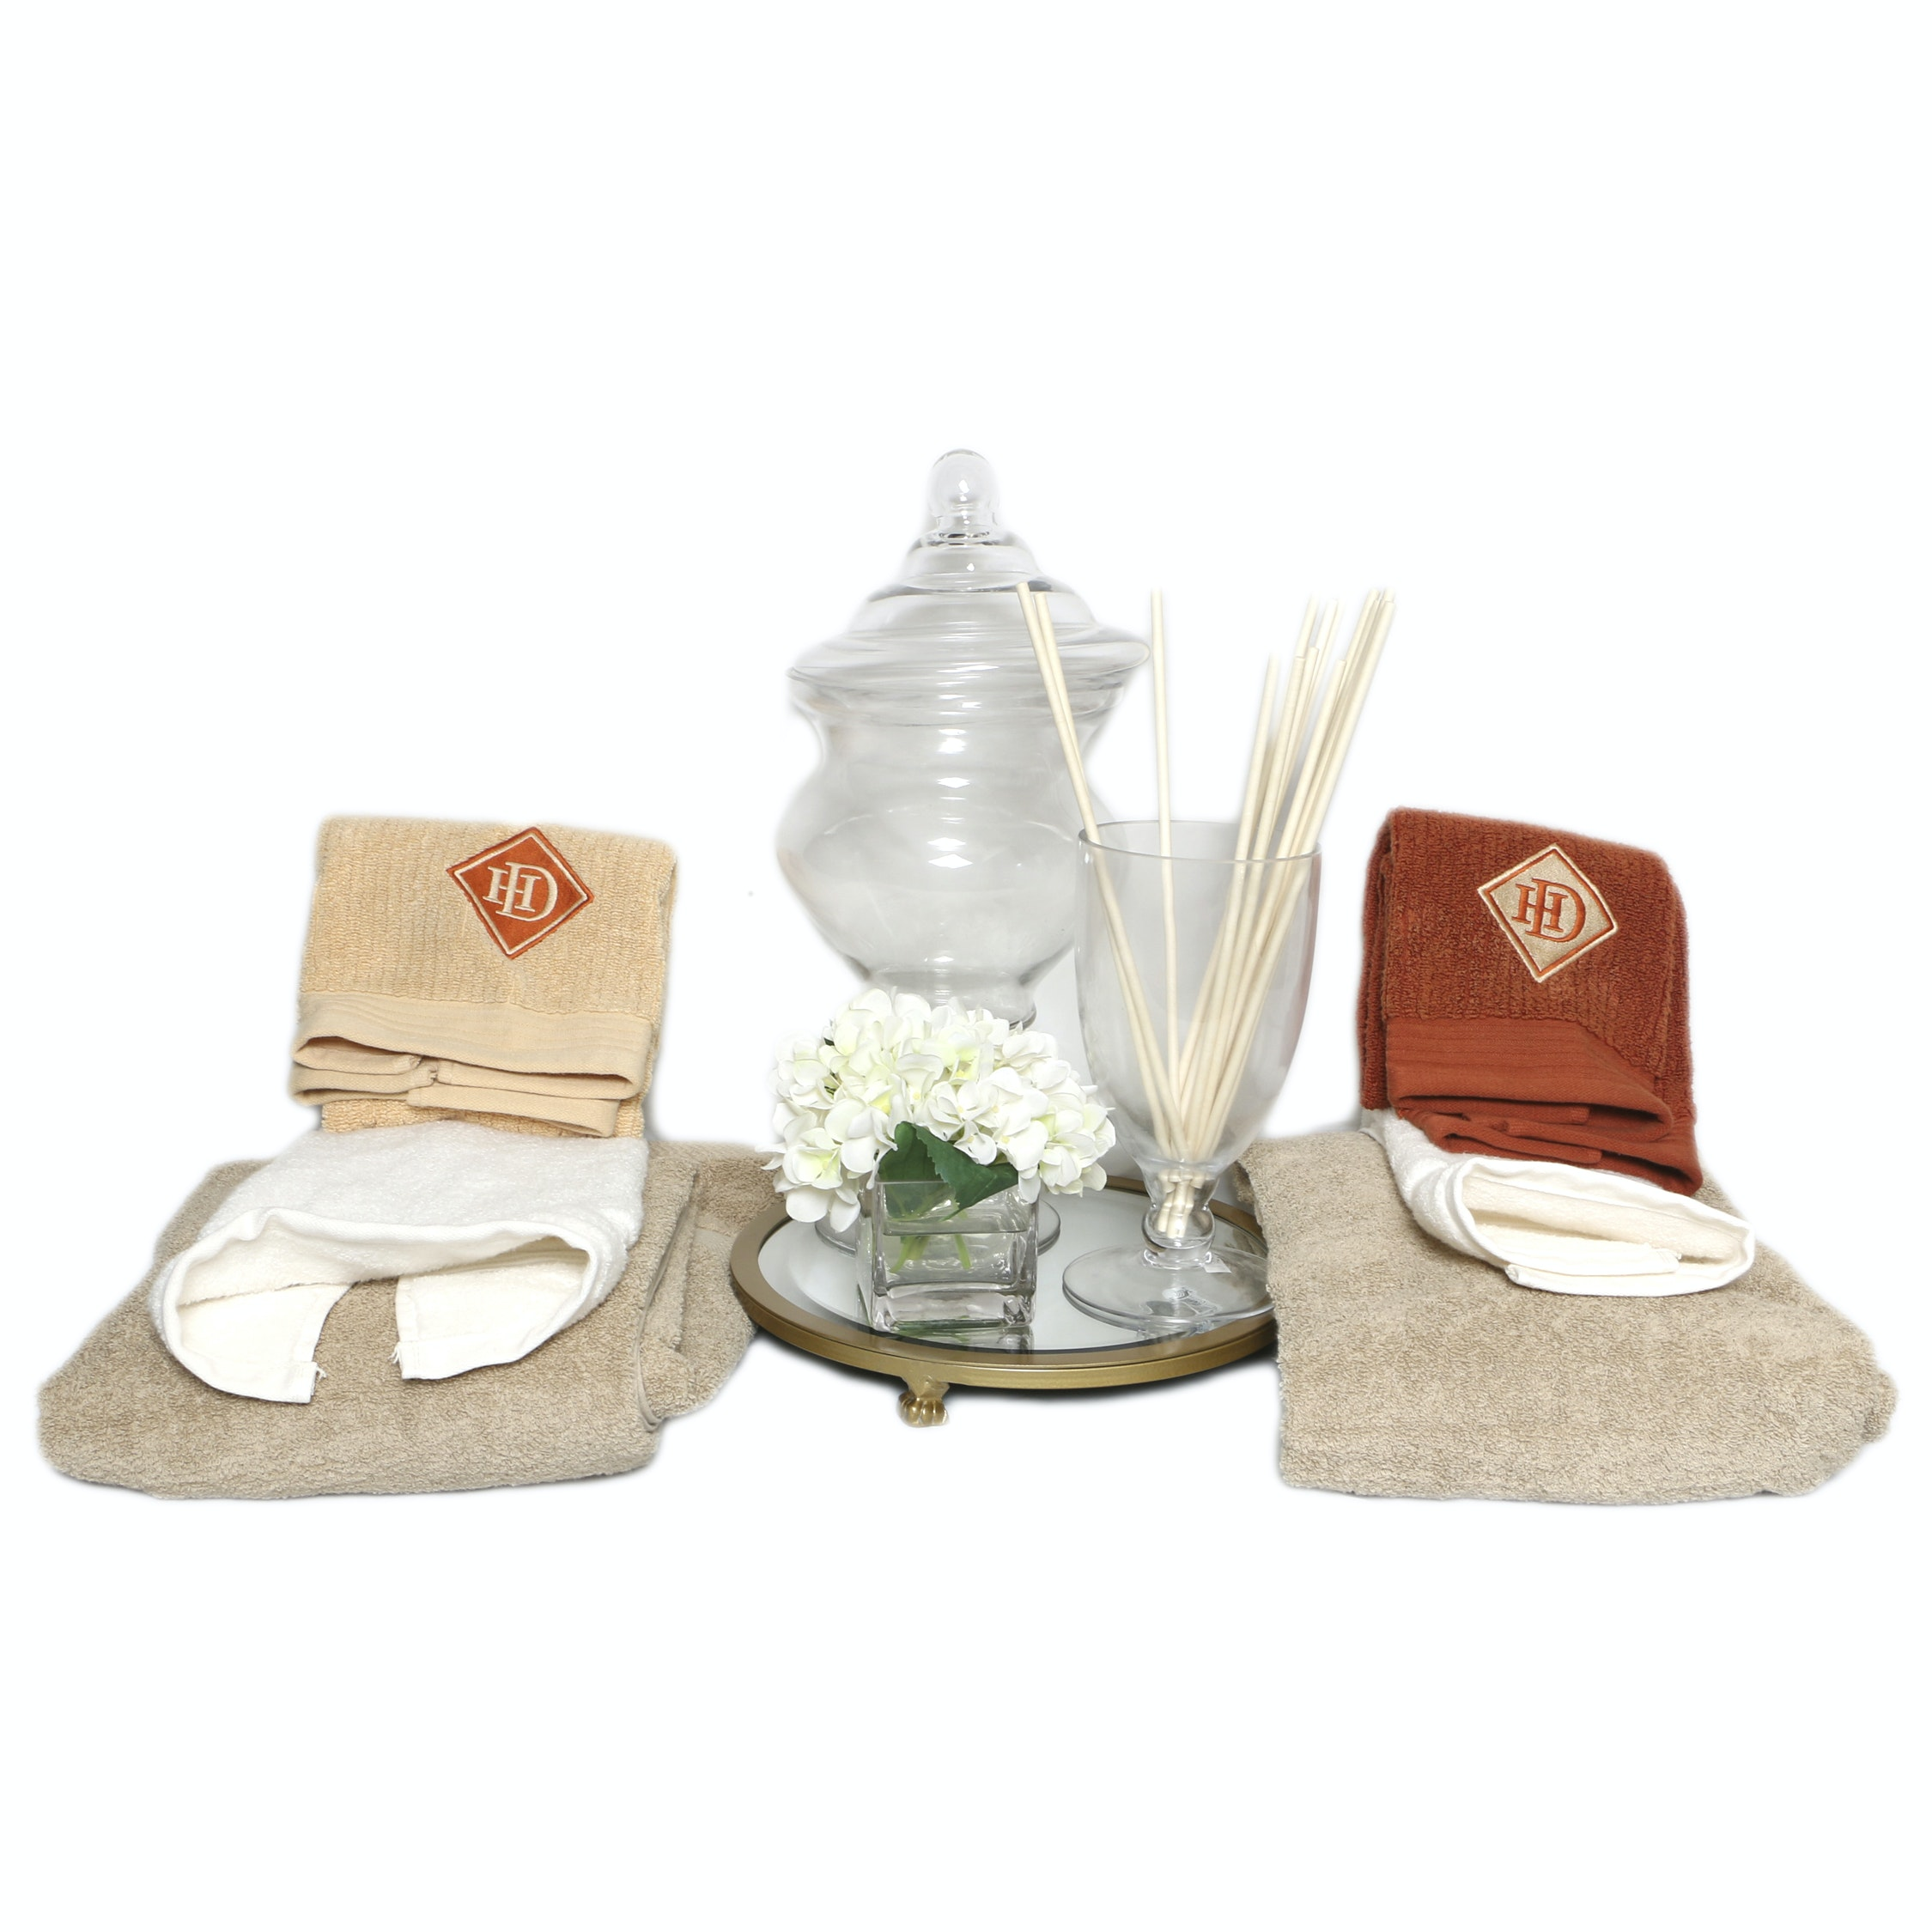 Bathroom Towels and Accessories including Lidded Glass Jar